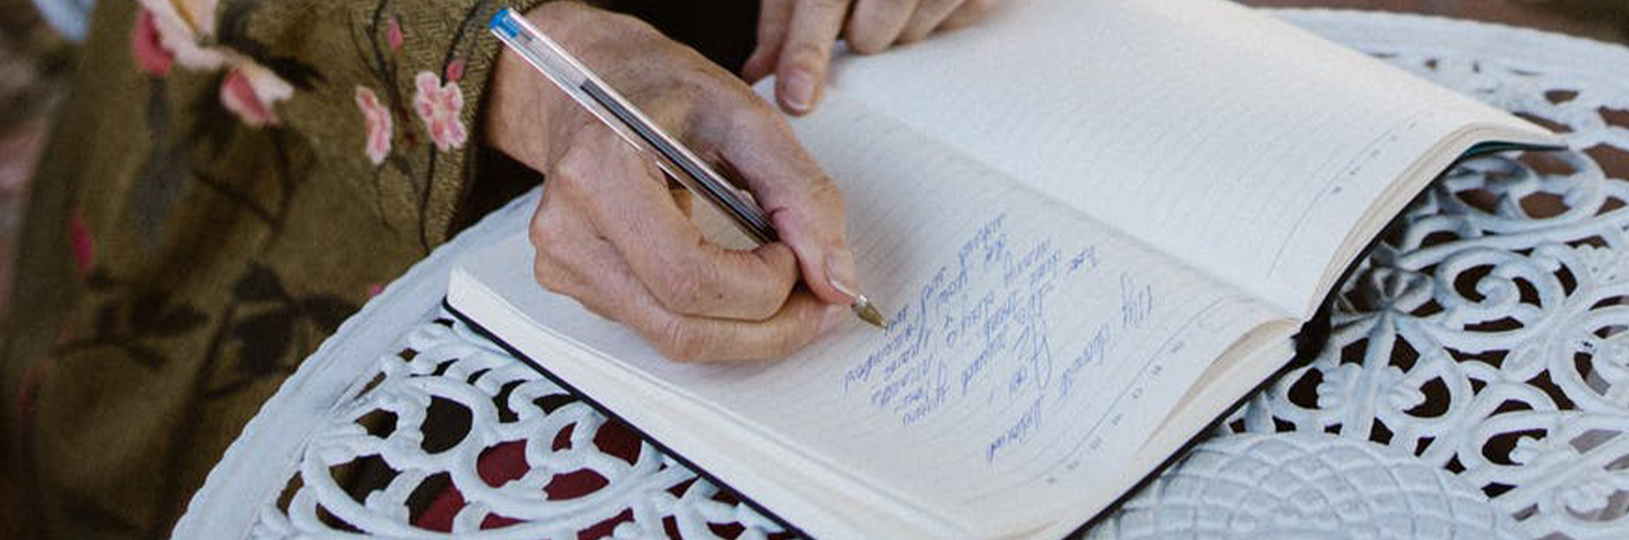 Image of a person writing their wedding vows